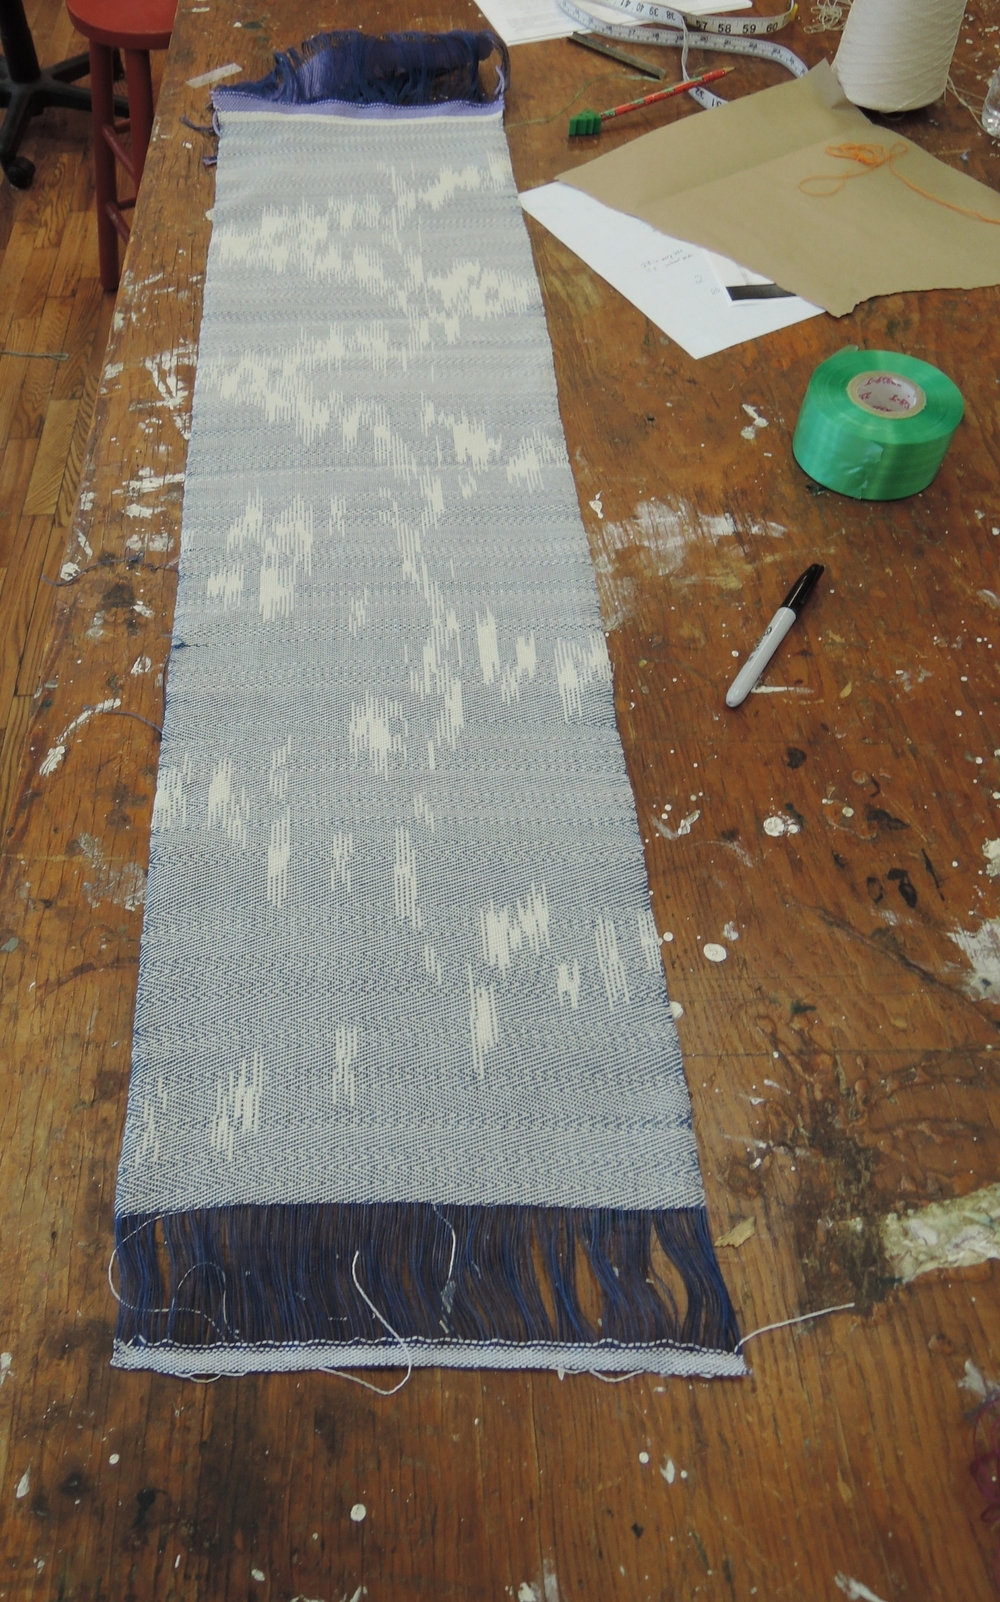 Cut off the loom and ready for finishing.